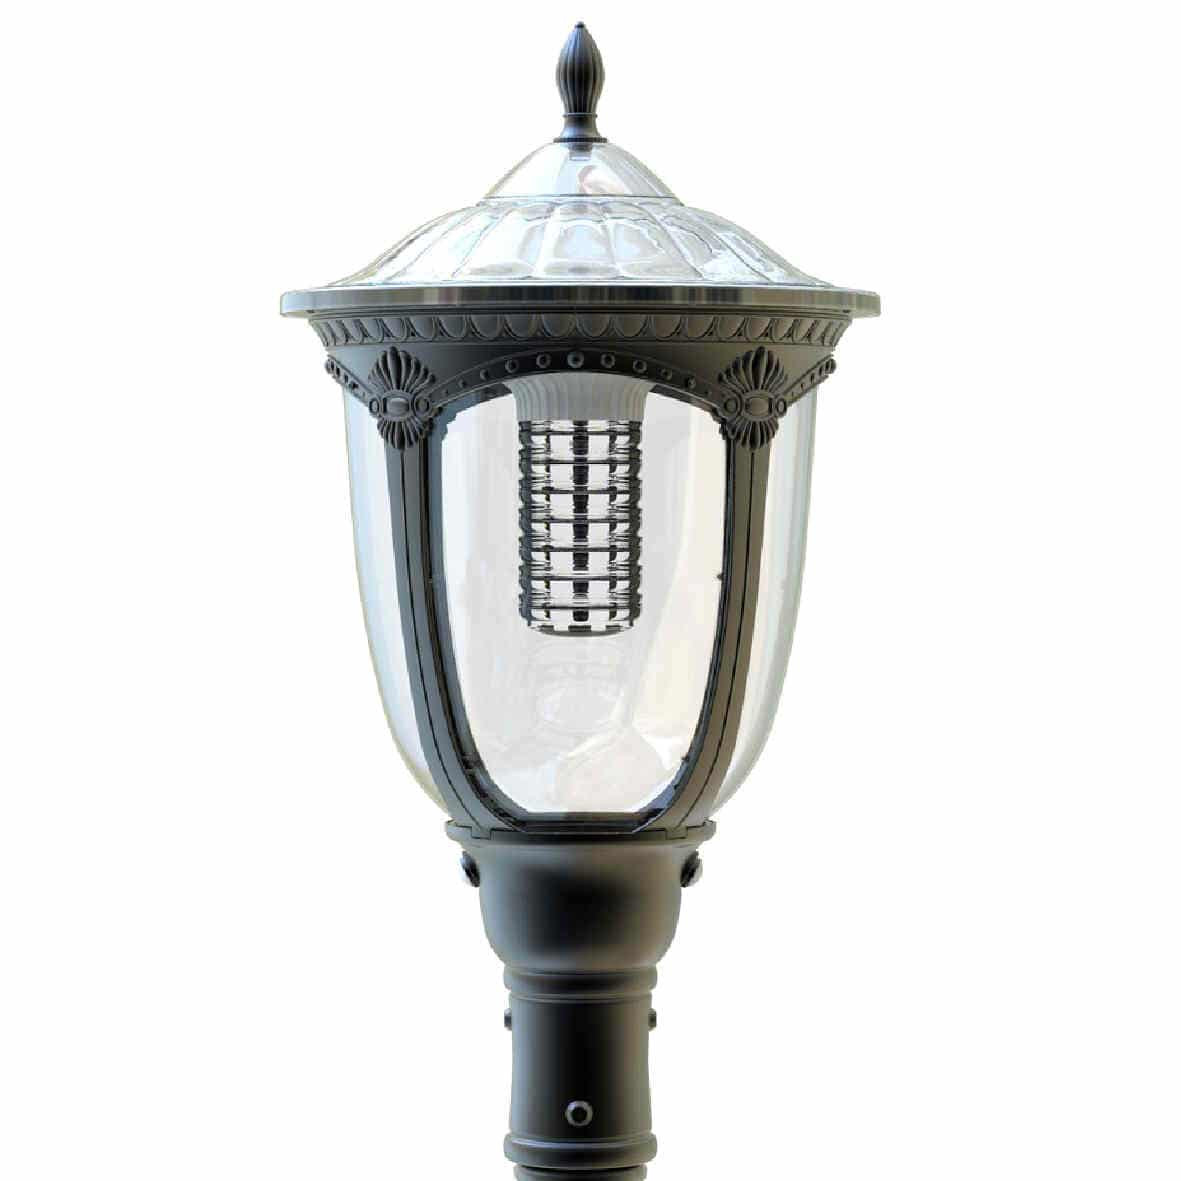 Best ideas about Solar Lamp Post Lights . Save or Pin Image of BlackFrog Solar s Royal2000 solar lamp post Now.